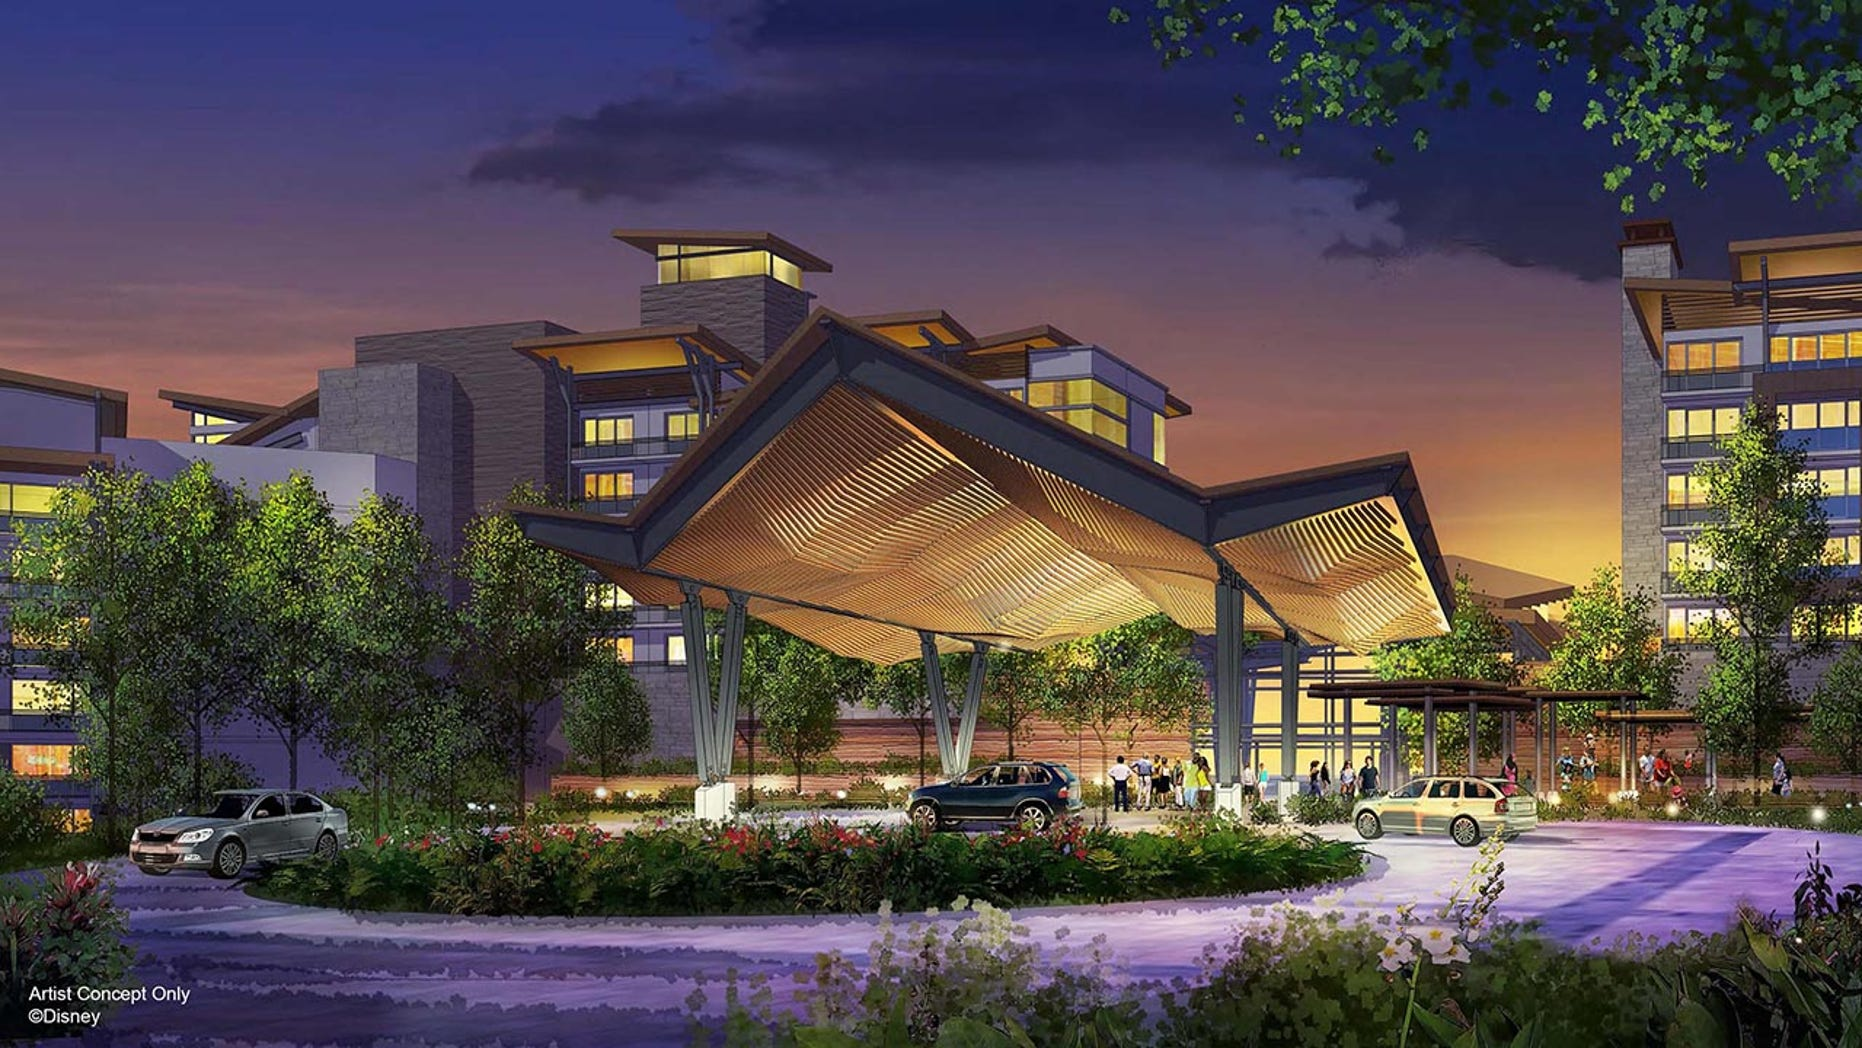 Located on Bay Lake between Disney's Wilderness Lodge and Disney's Fort Wilderness Resort & Campground, the resort will feature designs inspired by its natural surroundings.